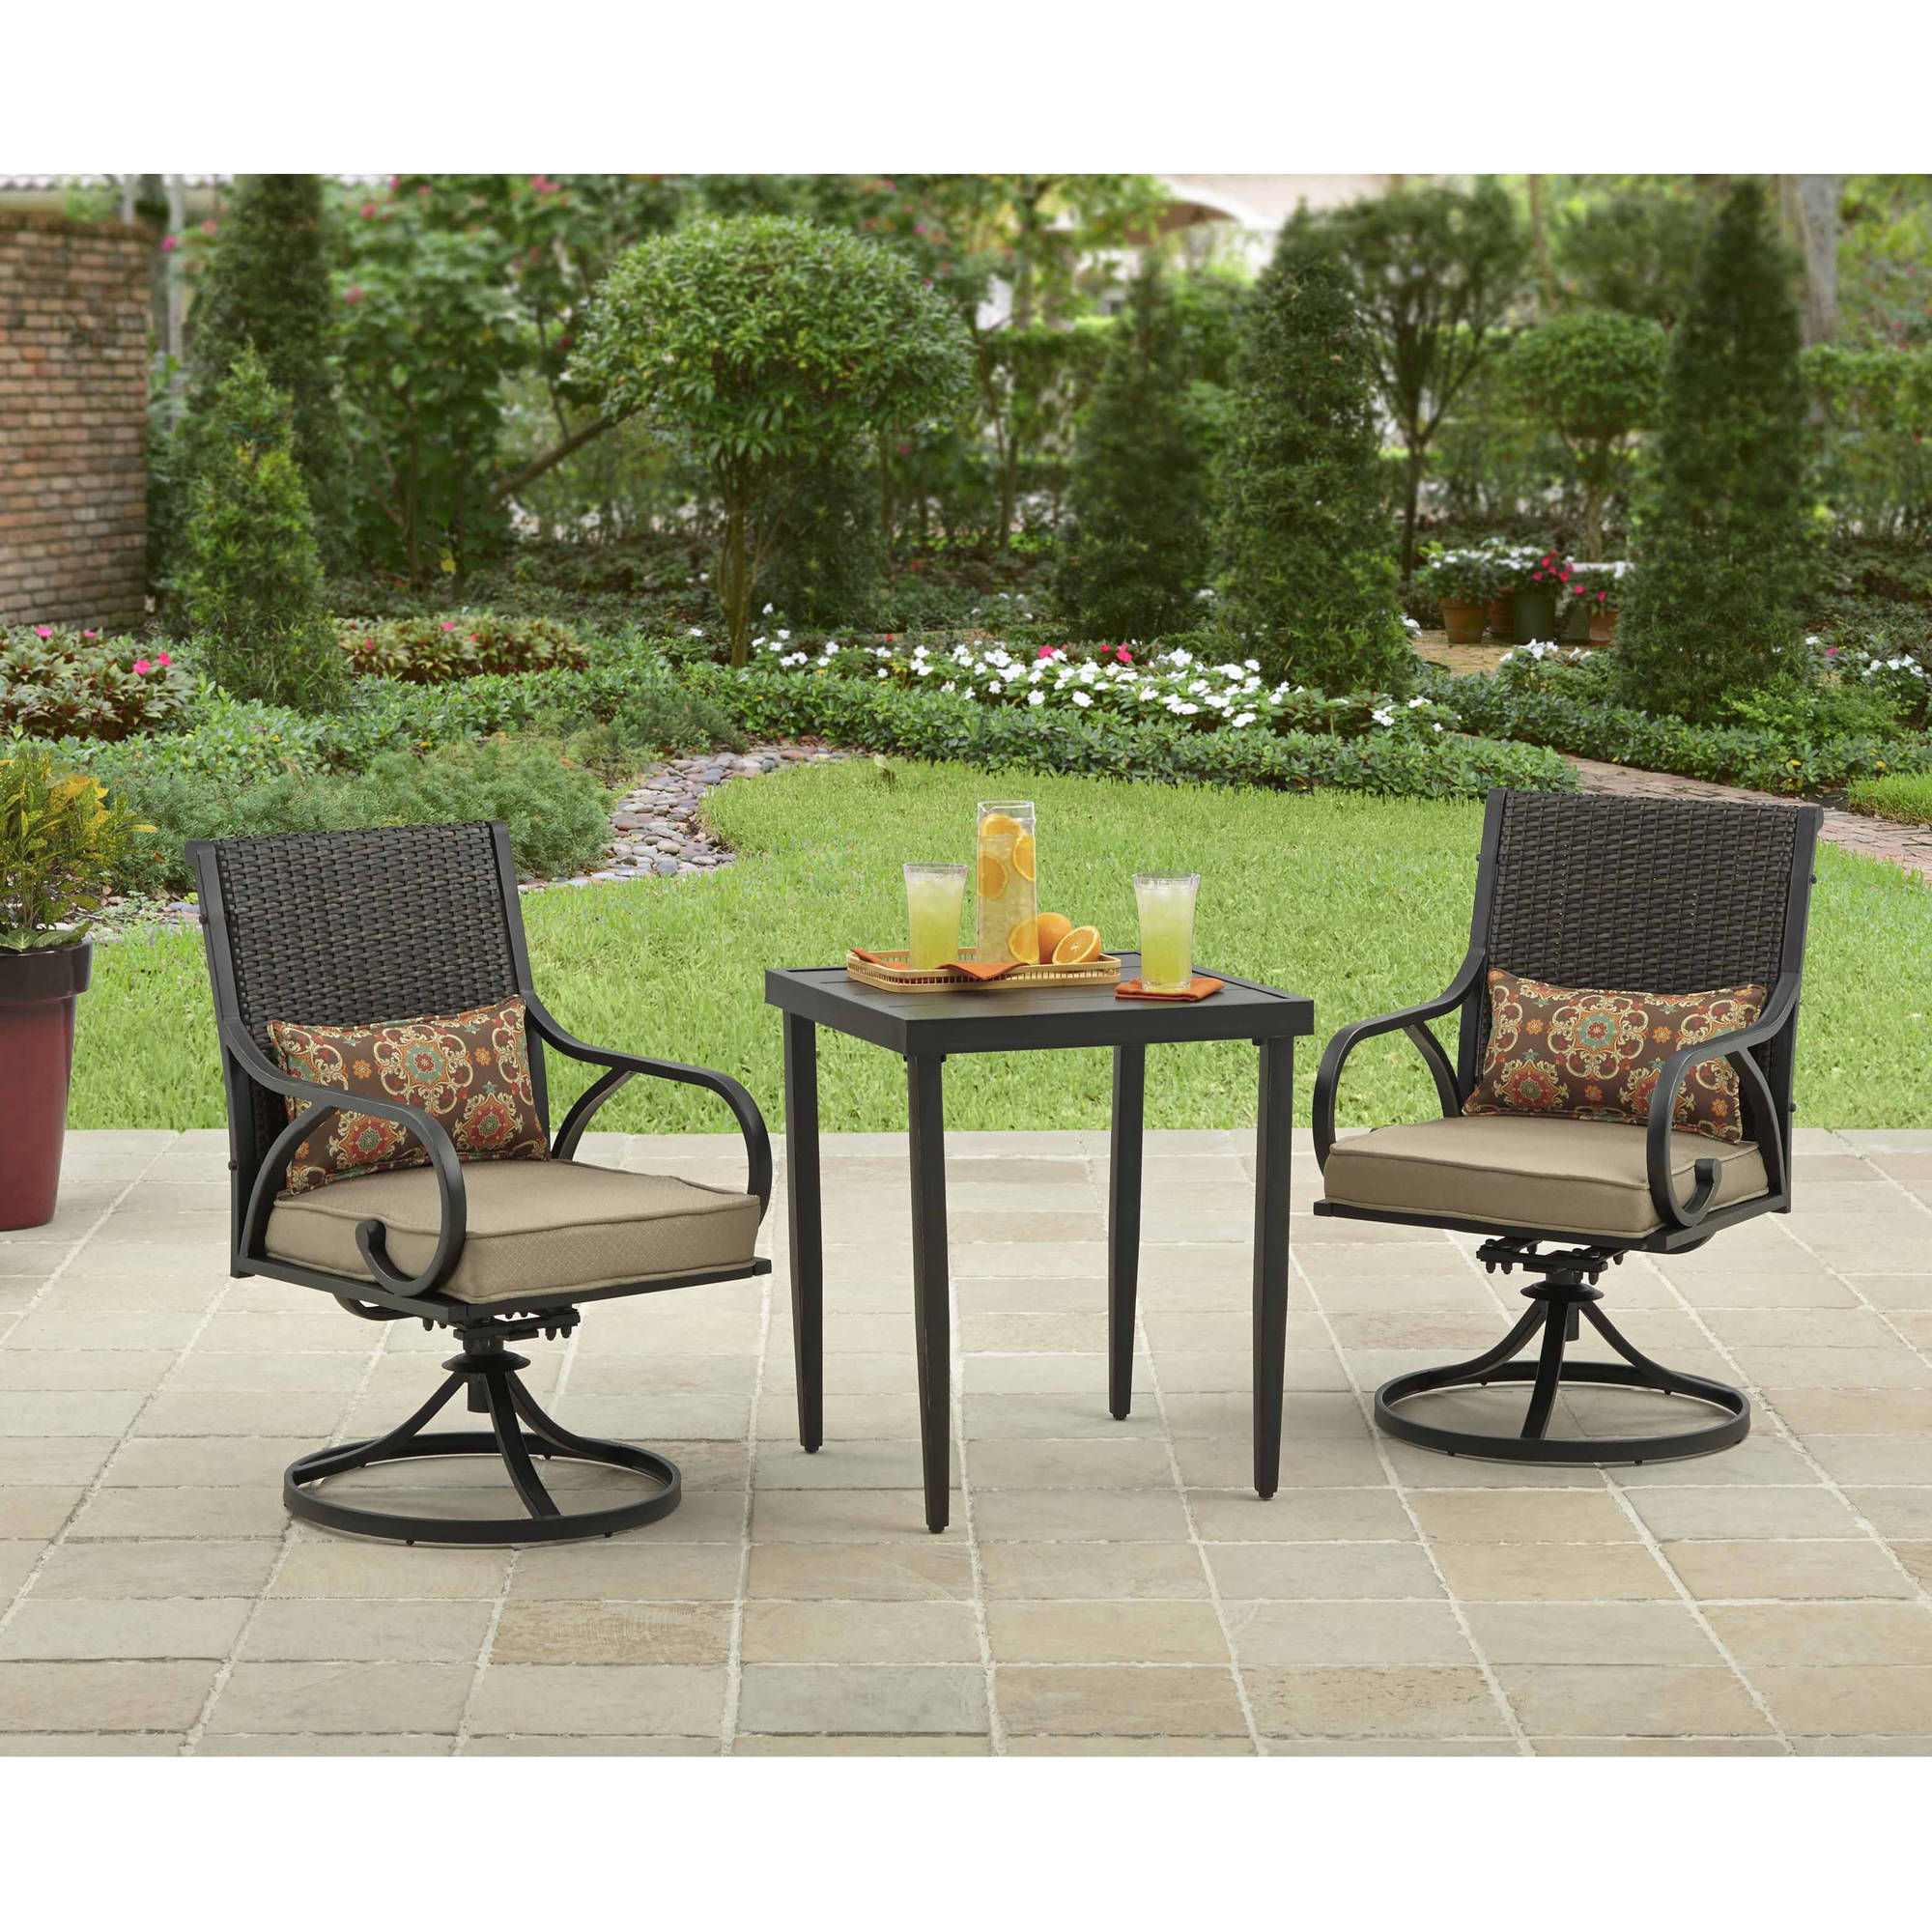 details about outdoor bistro set 3 piece table chairs swivel rocker wicker patio furniture